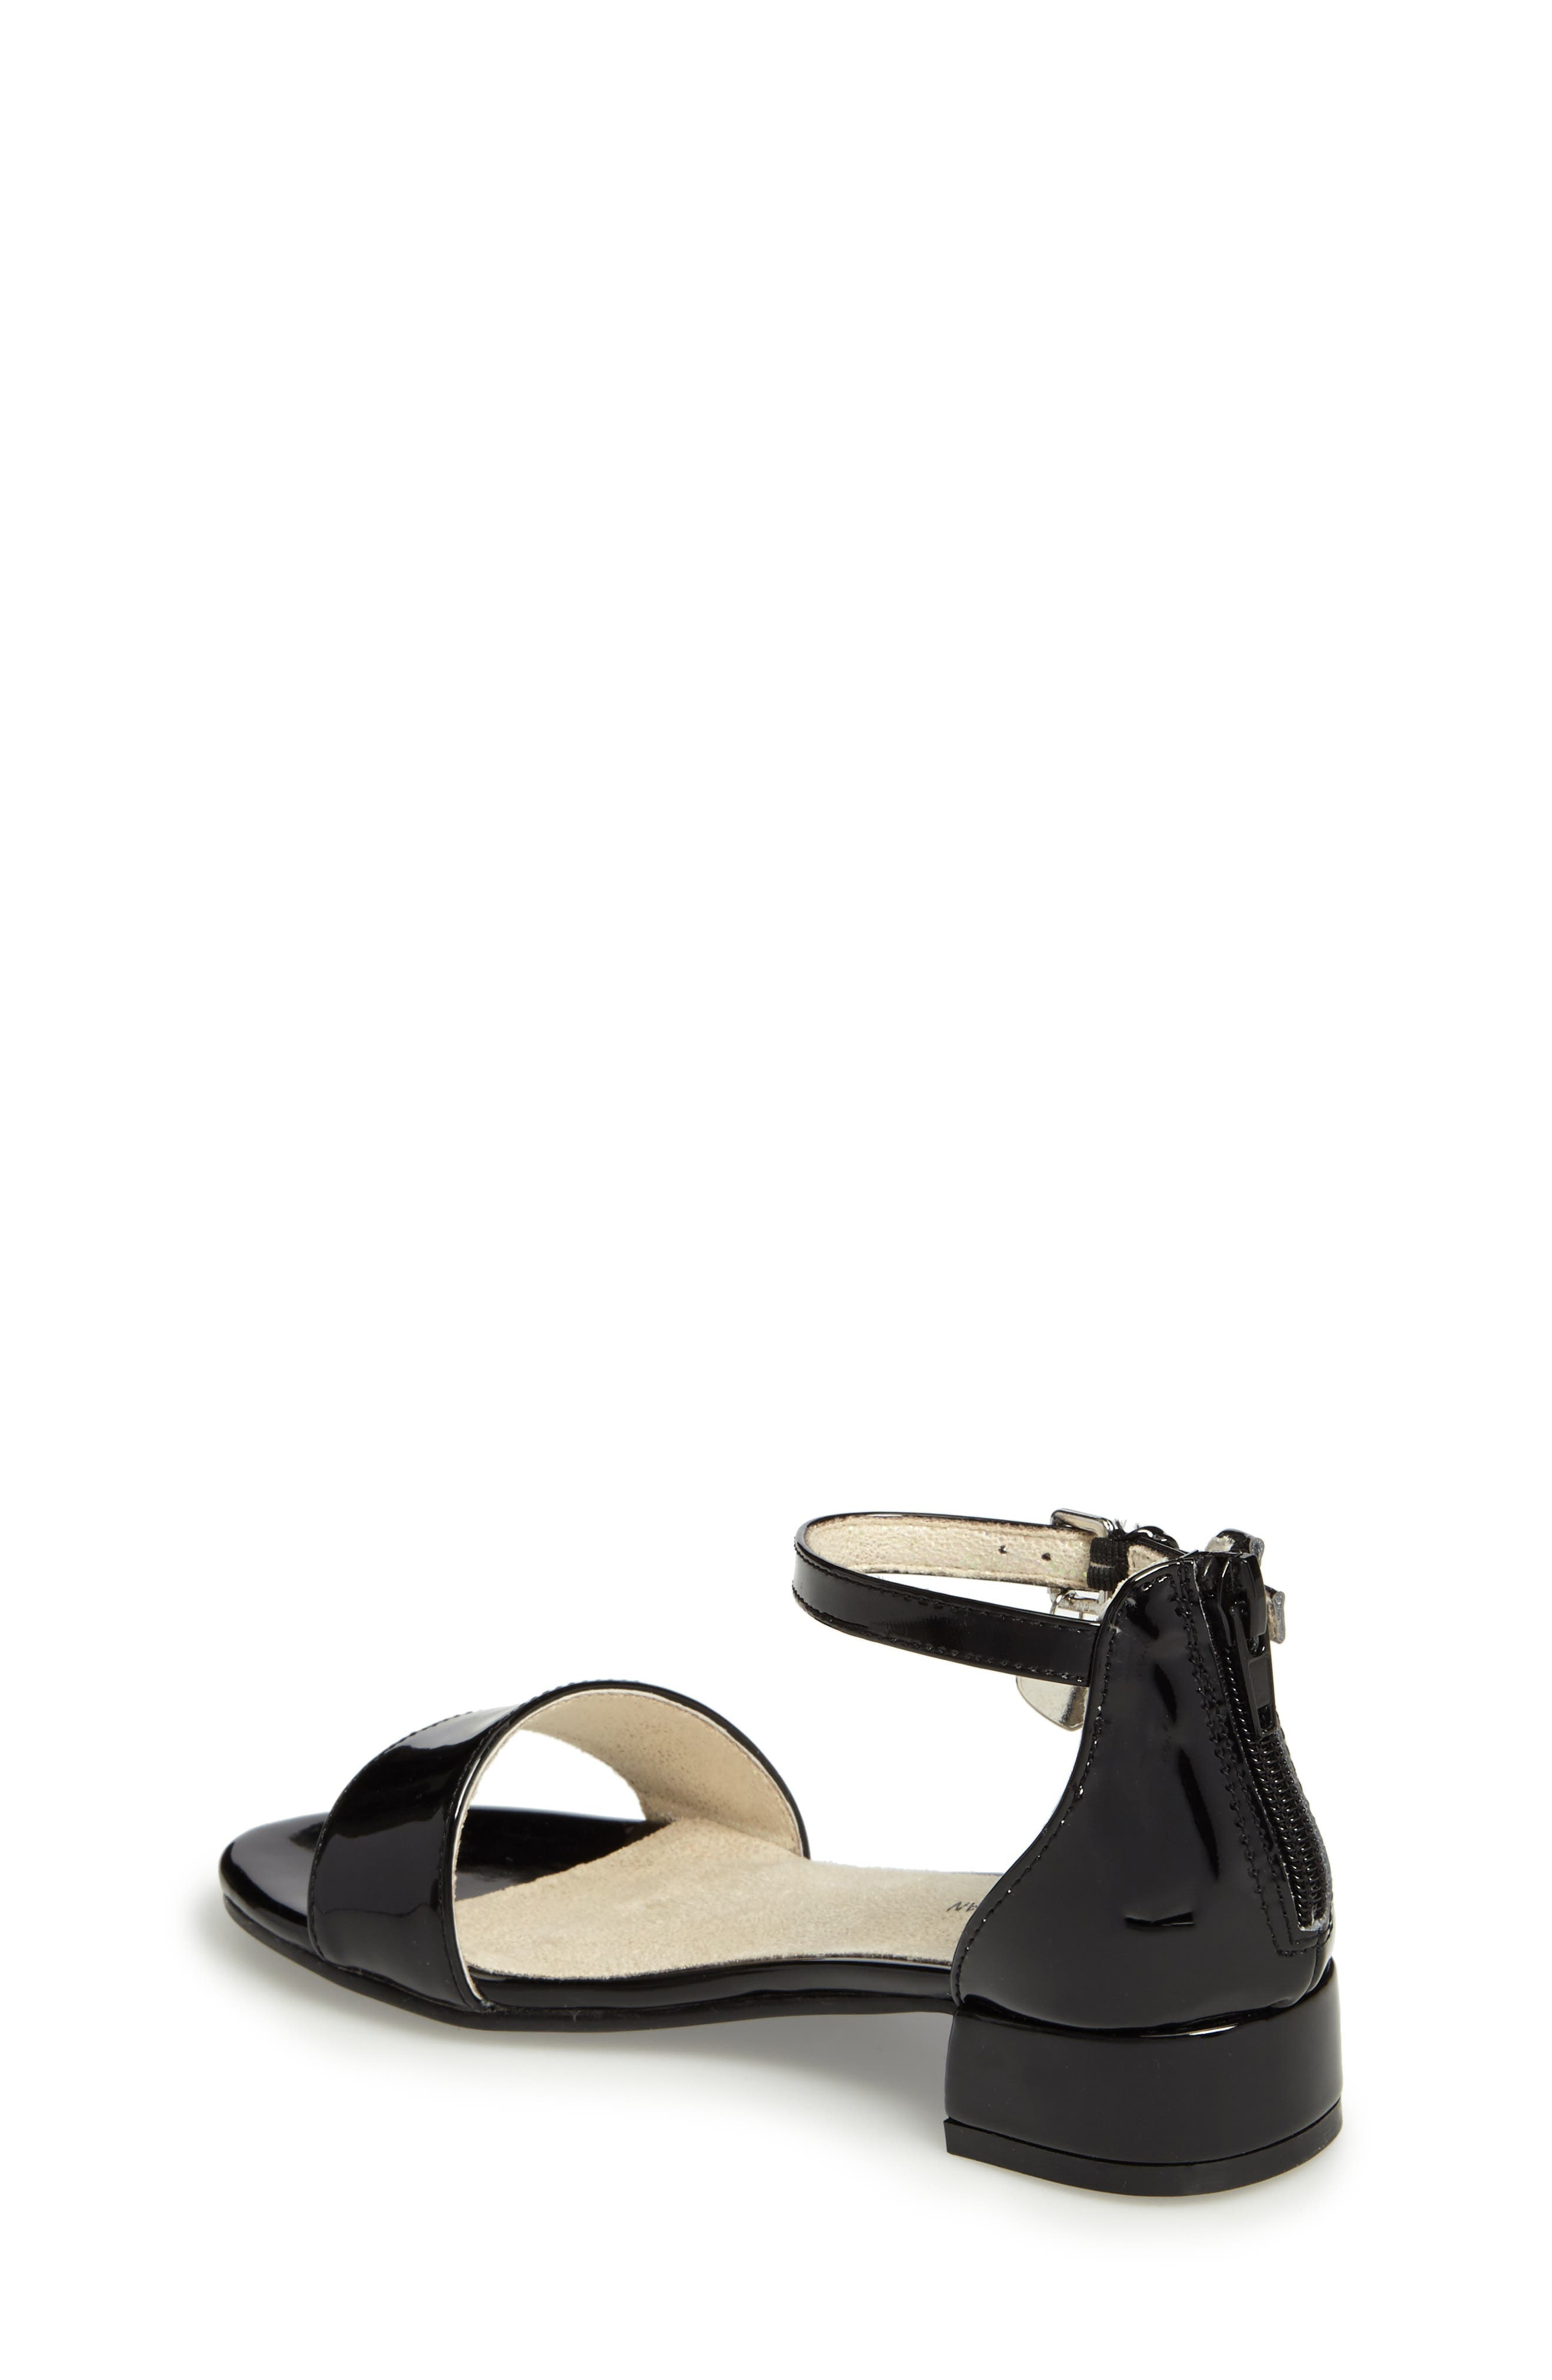 STUART WEITZMAN, Penelope Nola Sandal, Alternate thumbnail 2, color, BLACK FAUX PATENT